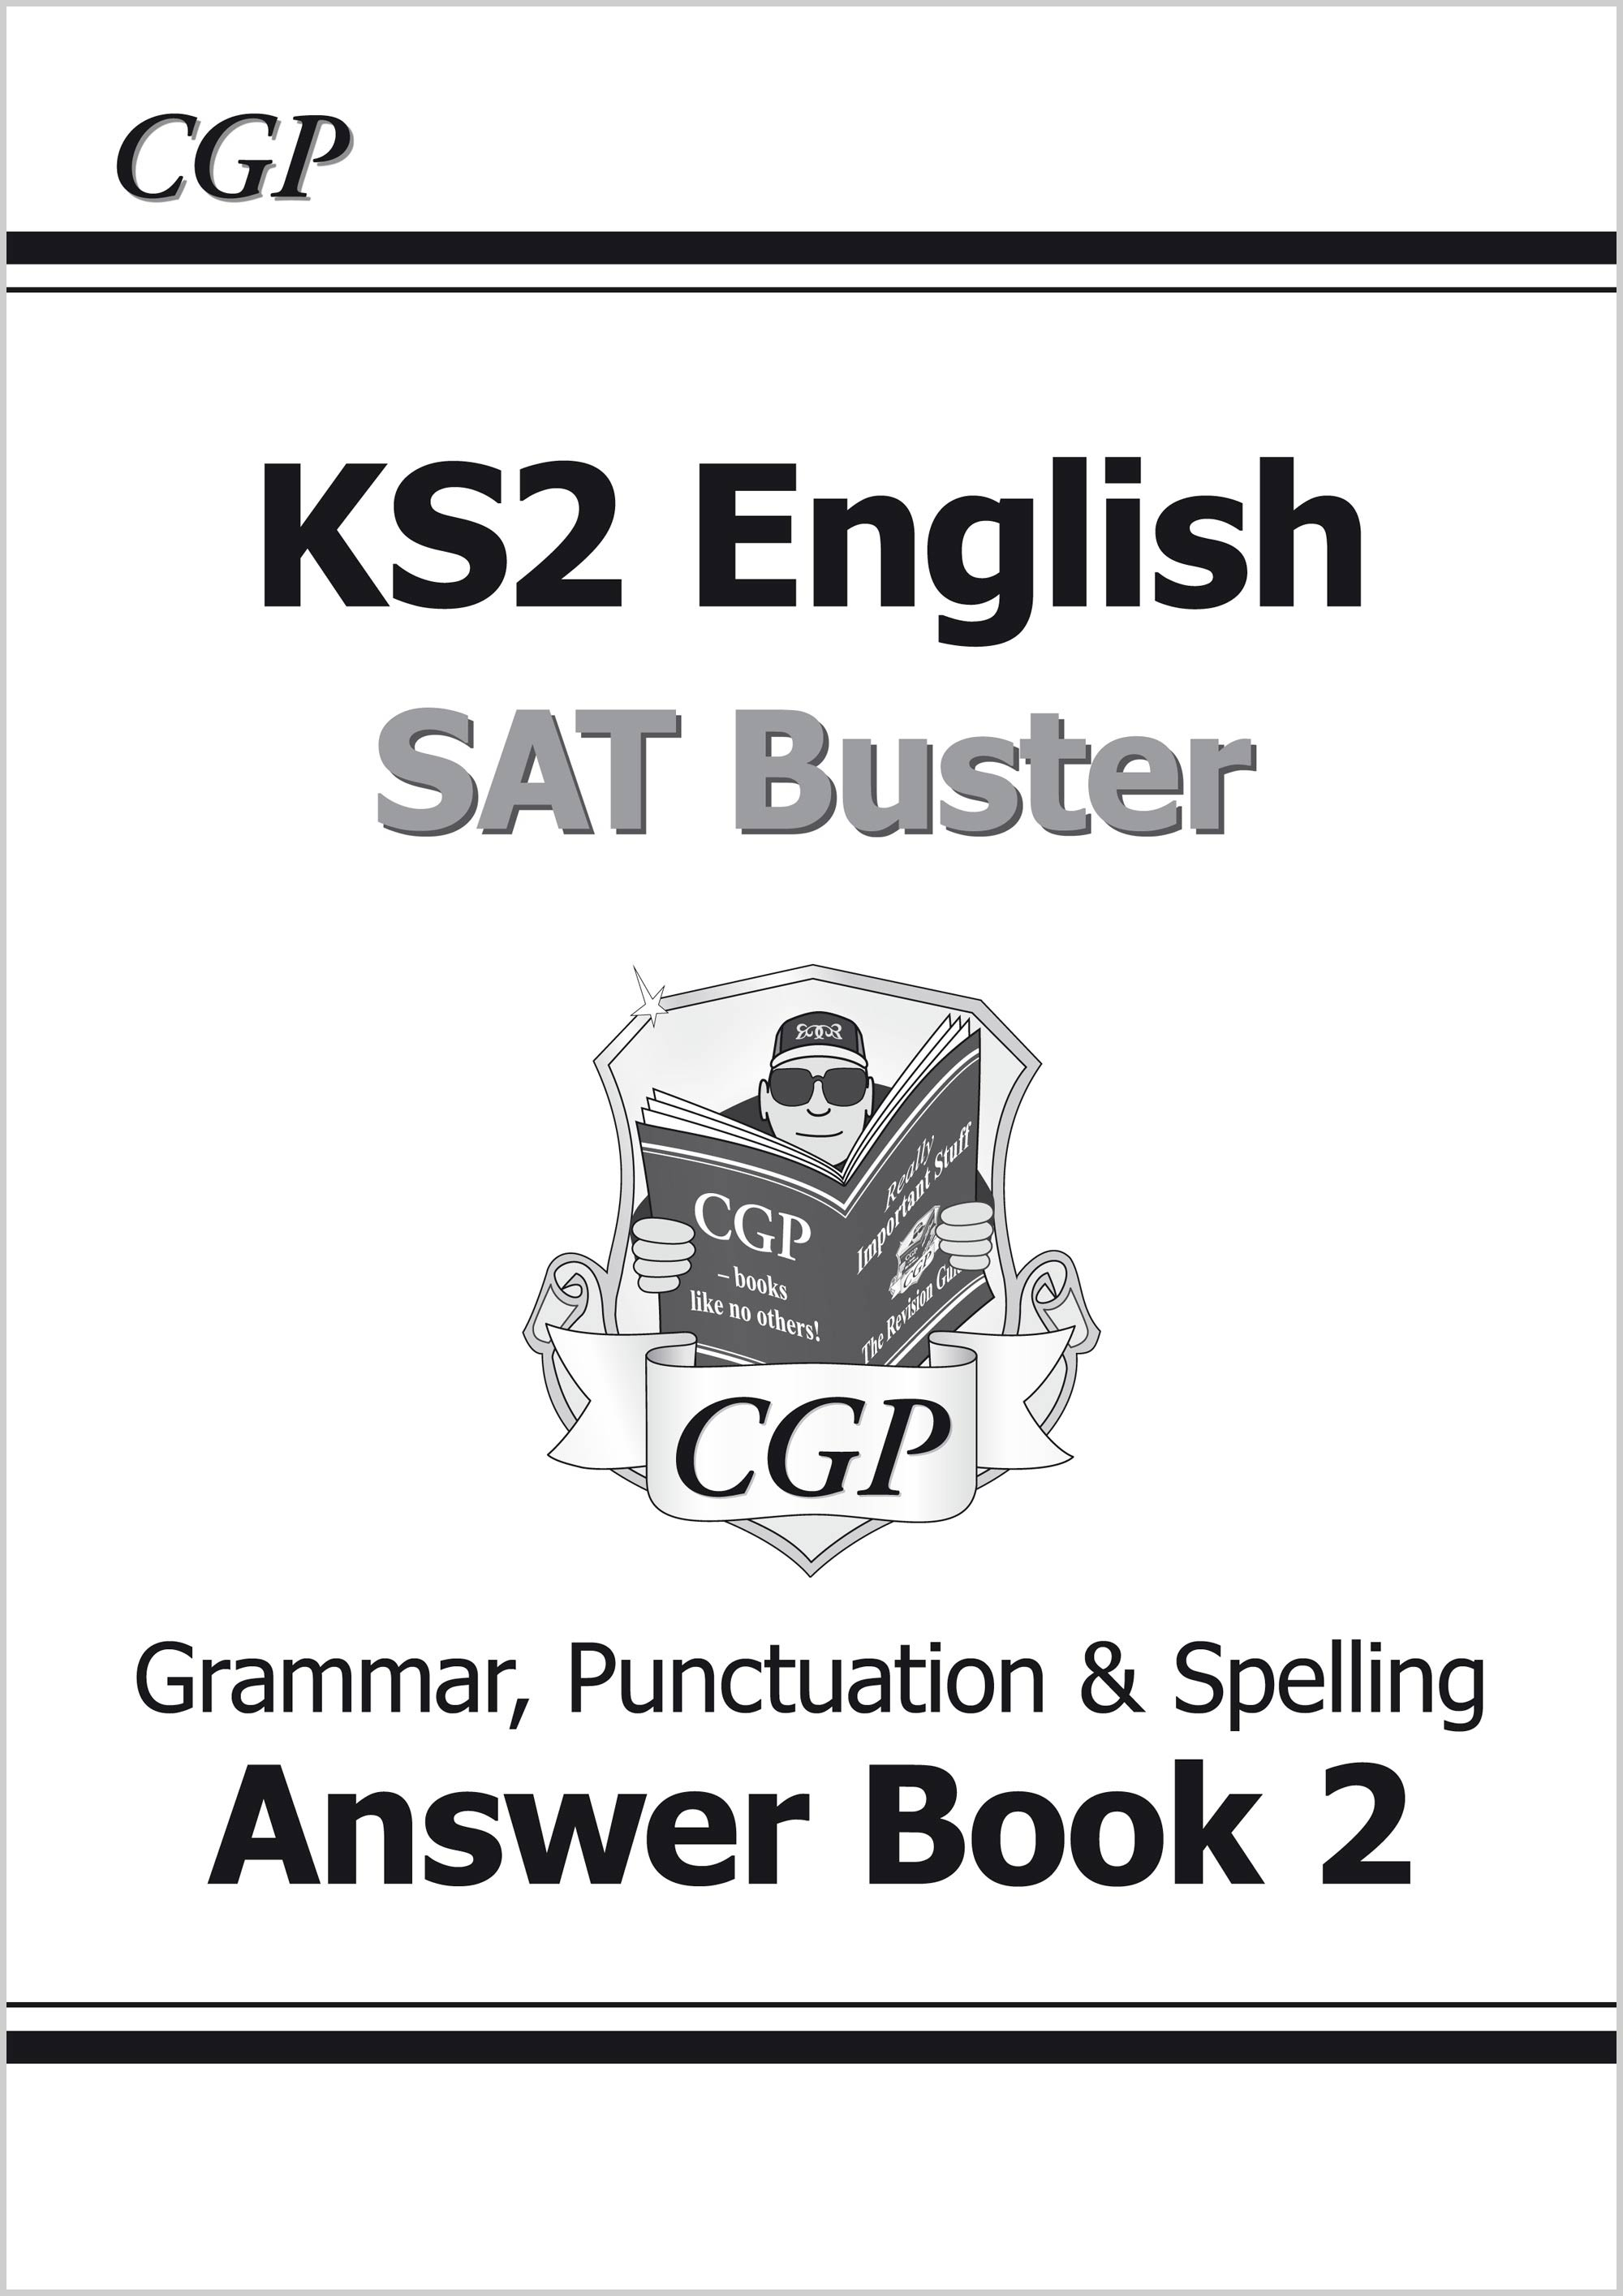 E6GA222 - KS2 English SAT Buster Book 2 Answers - Grammar, Punctuation & Spelling (for the 2018 test